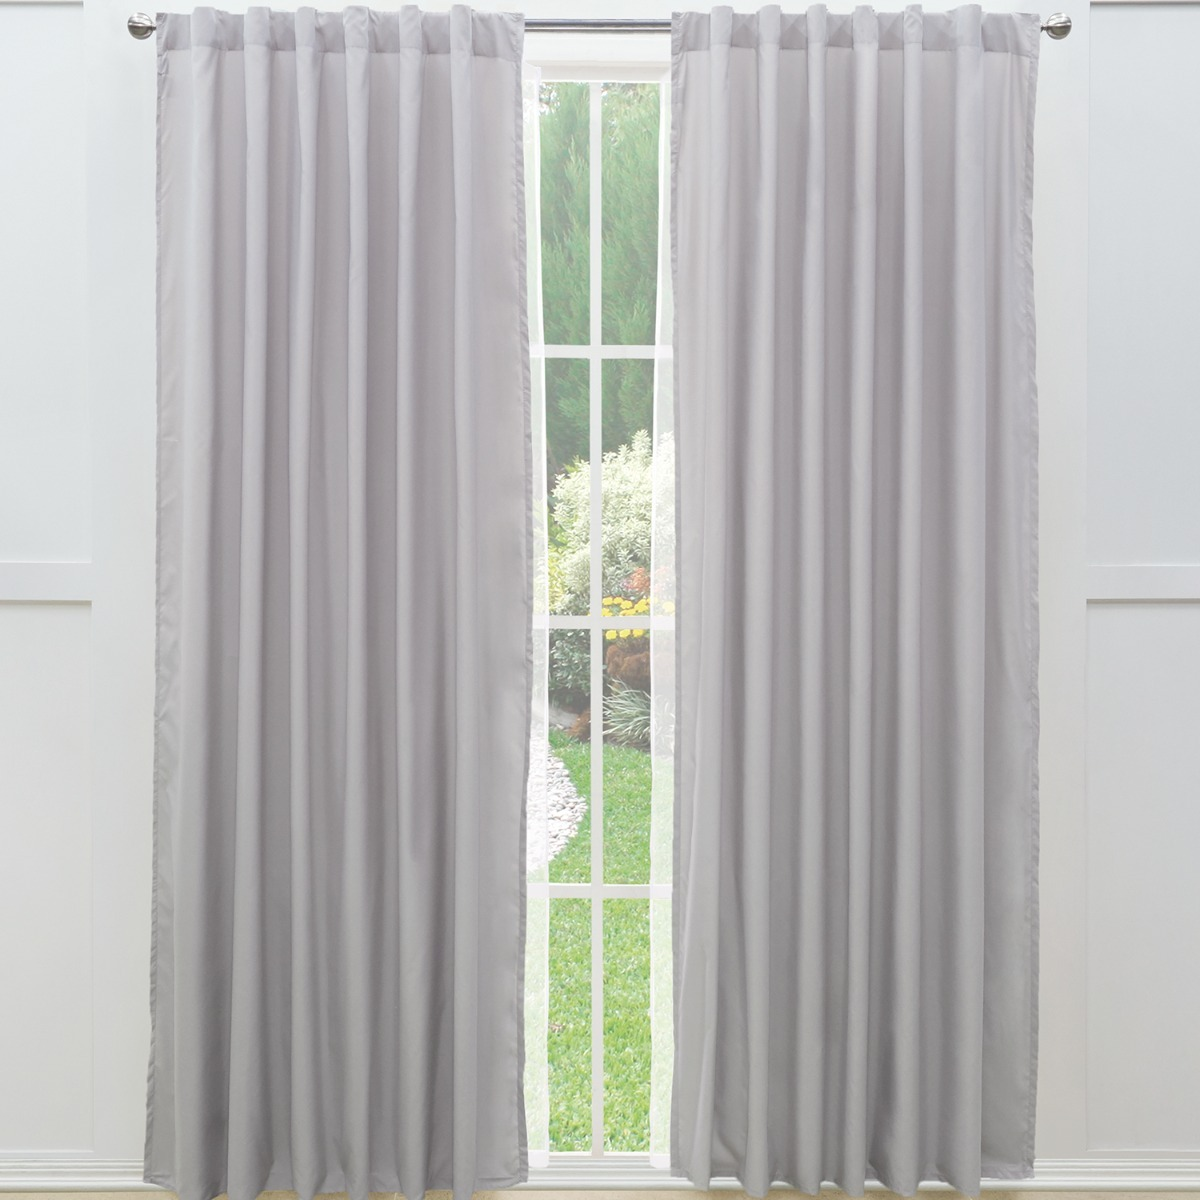 Juego cortinas largas viasoft gris claro vianney 479 for Cortinas largas